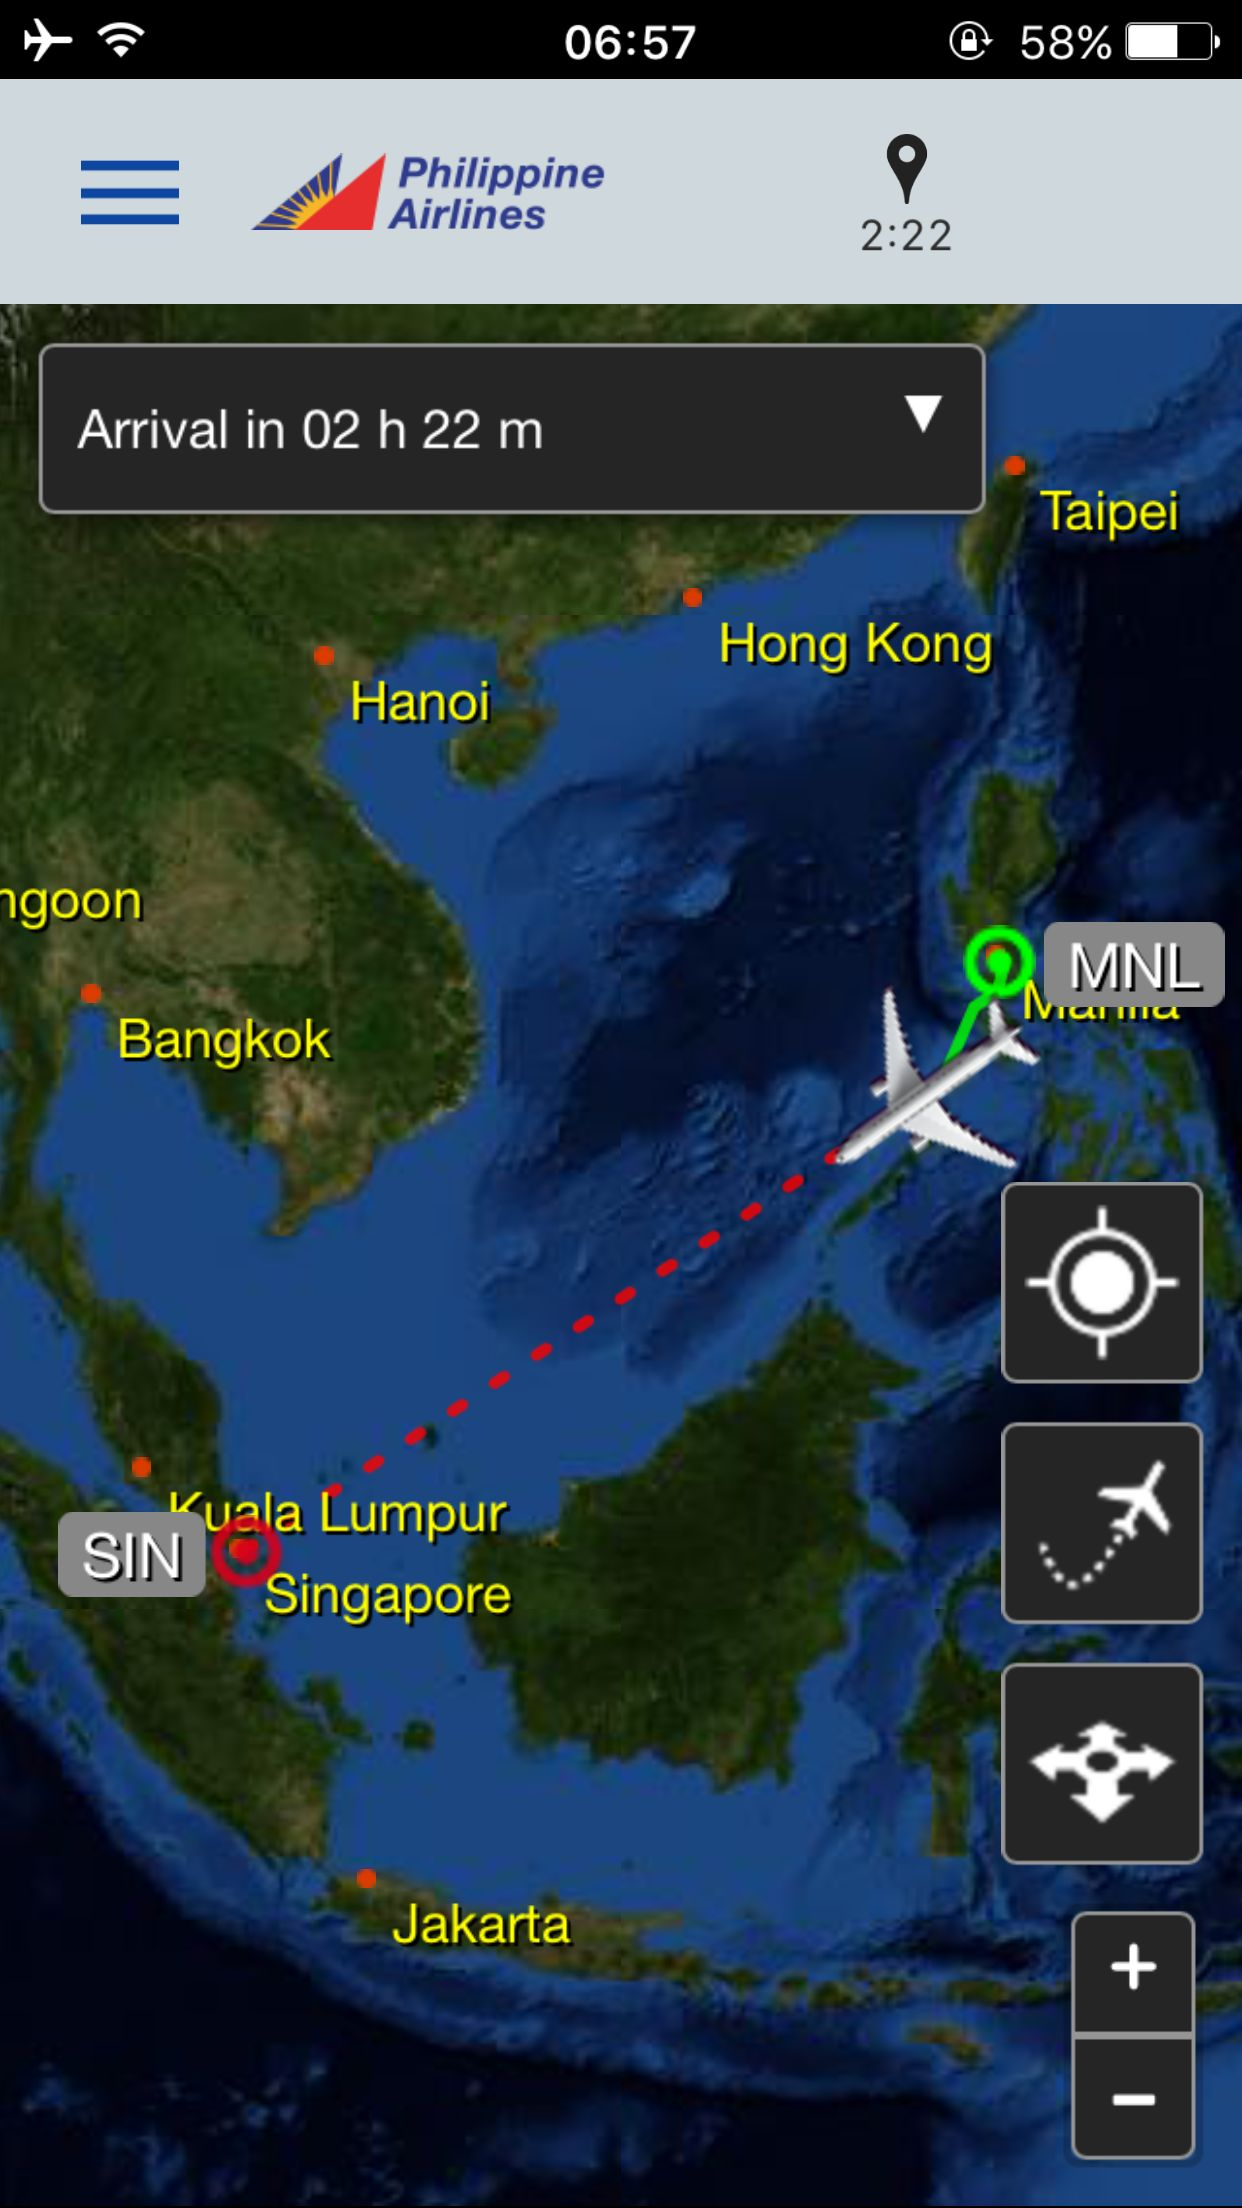 Review of Philippine Airlines flight from Manila to Singapore in Economy